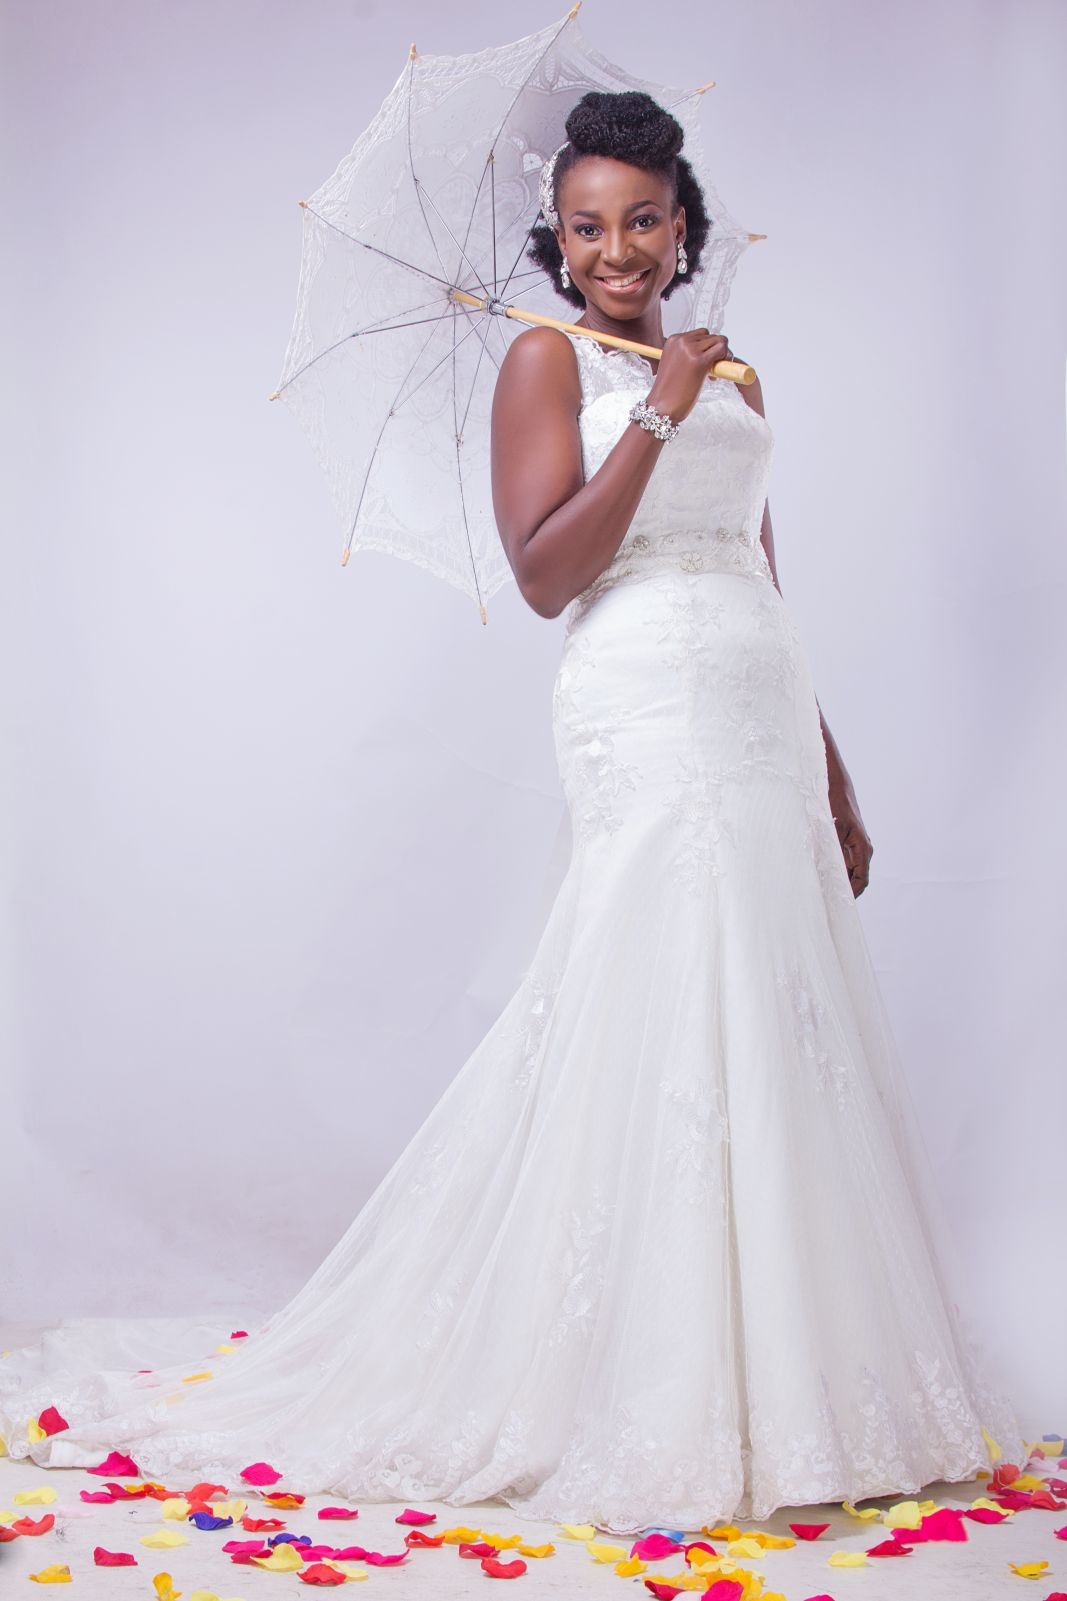 Natural Hair Bridal Inspiration Shoot by Yes! I Do Bridal - BellaNaija